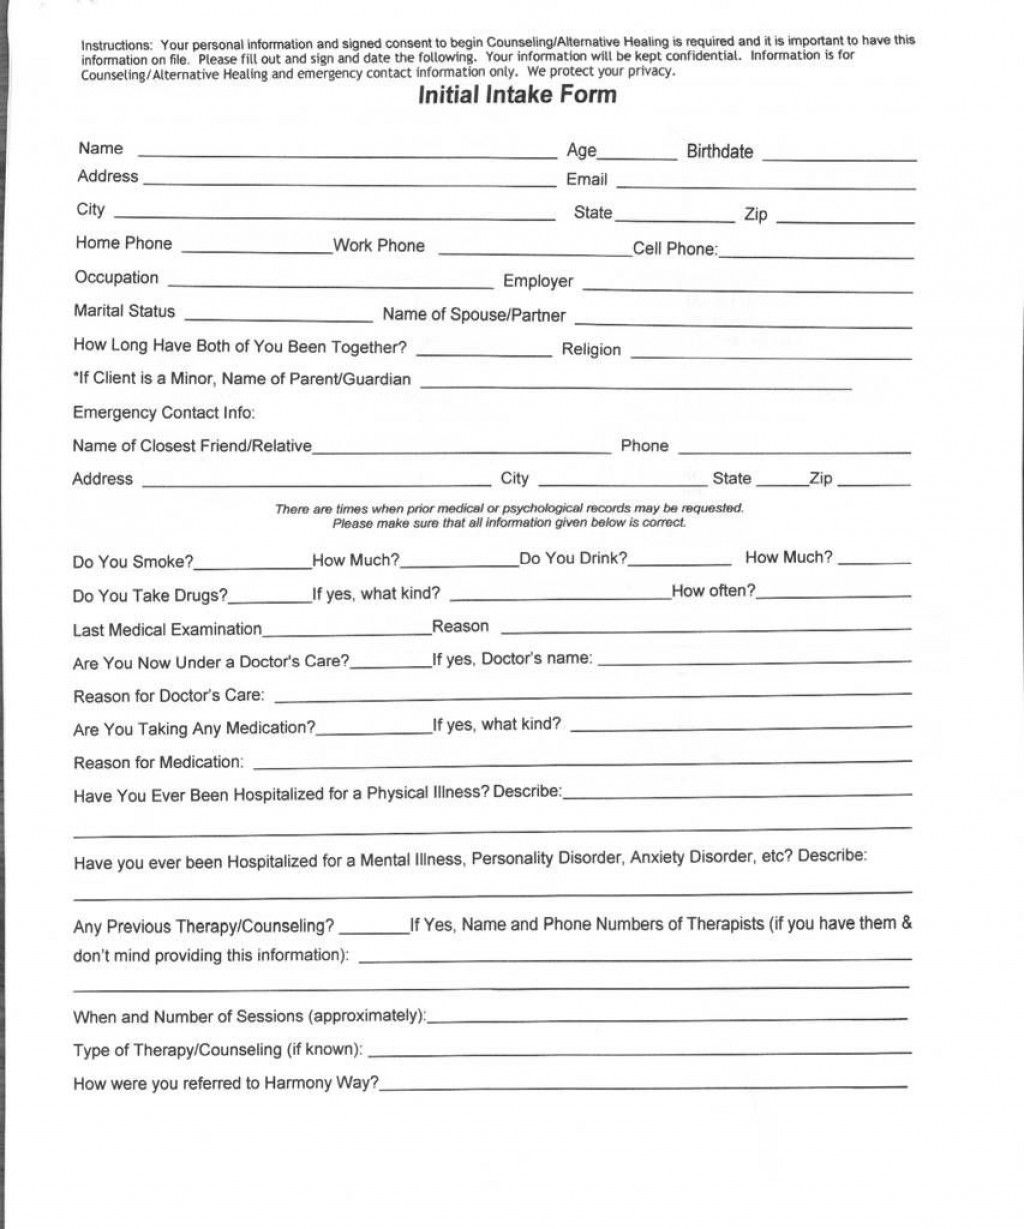 009 Unforgettable Medical History Form Template For Personal Training Highest Quality Large